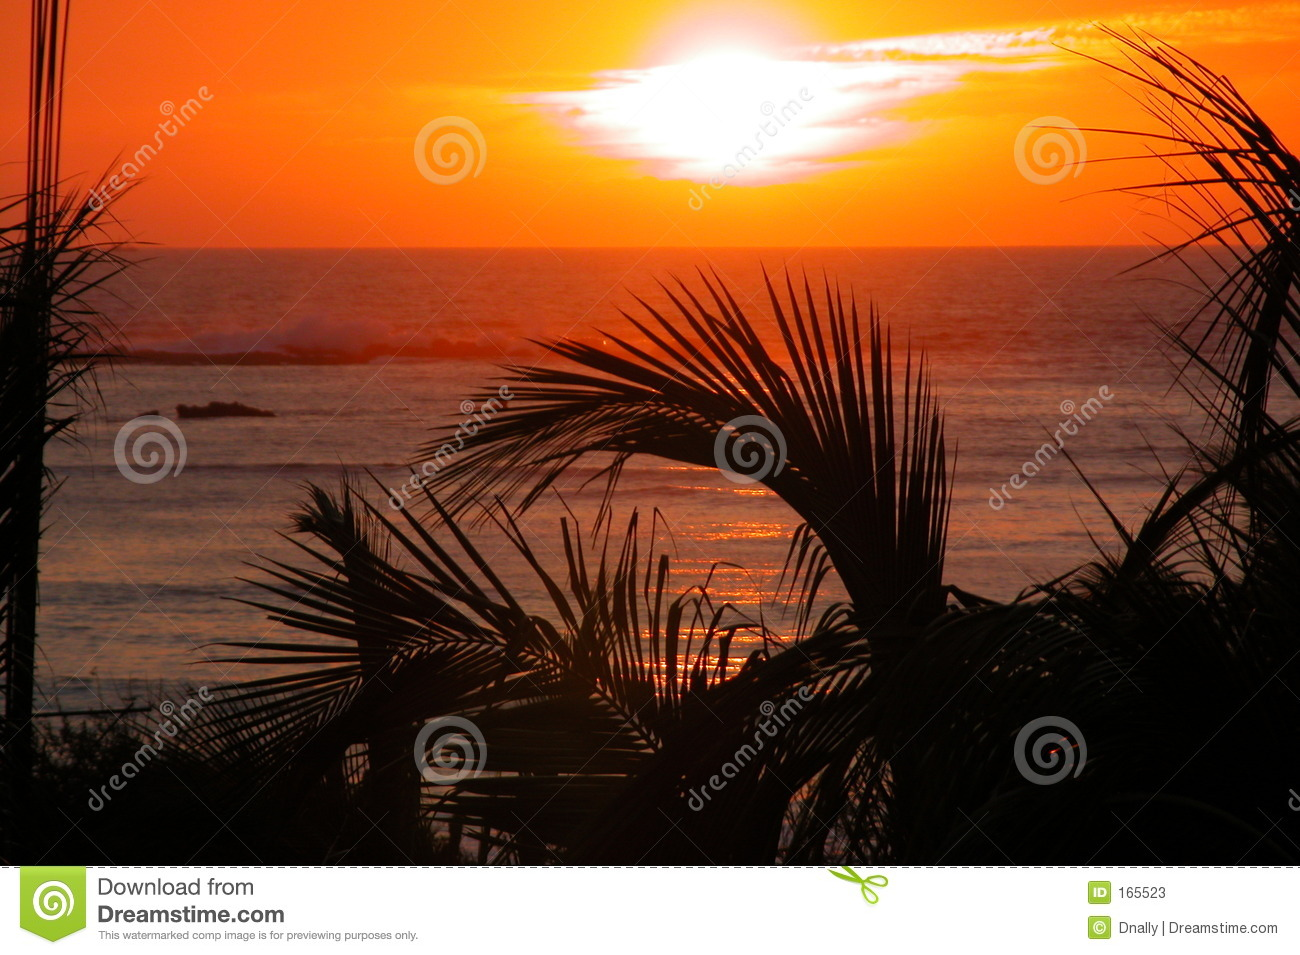 Tropical sunset over ocean